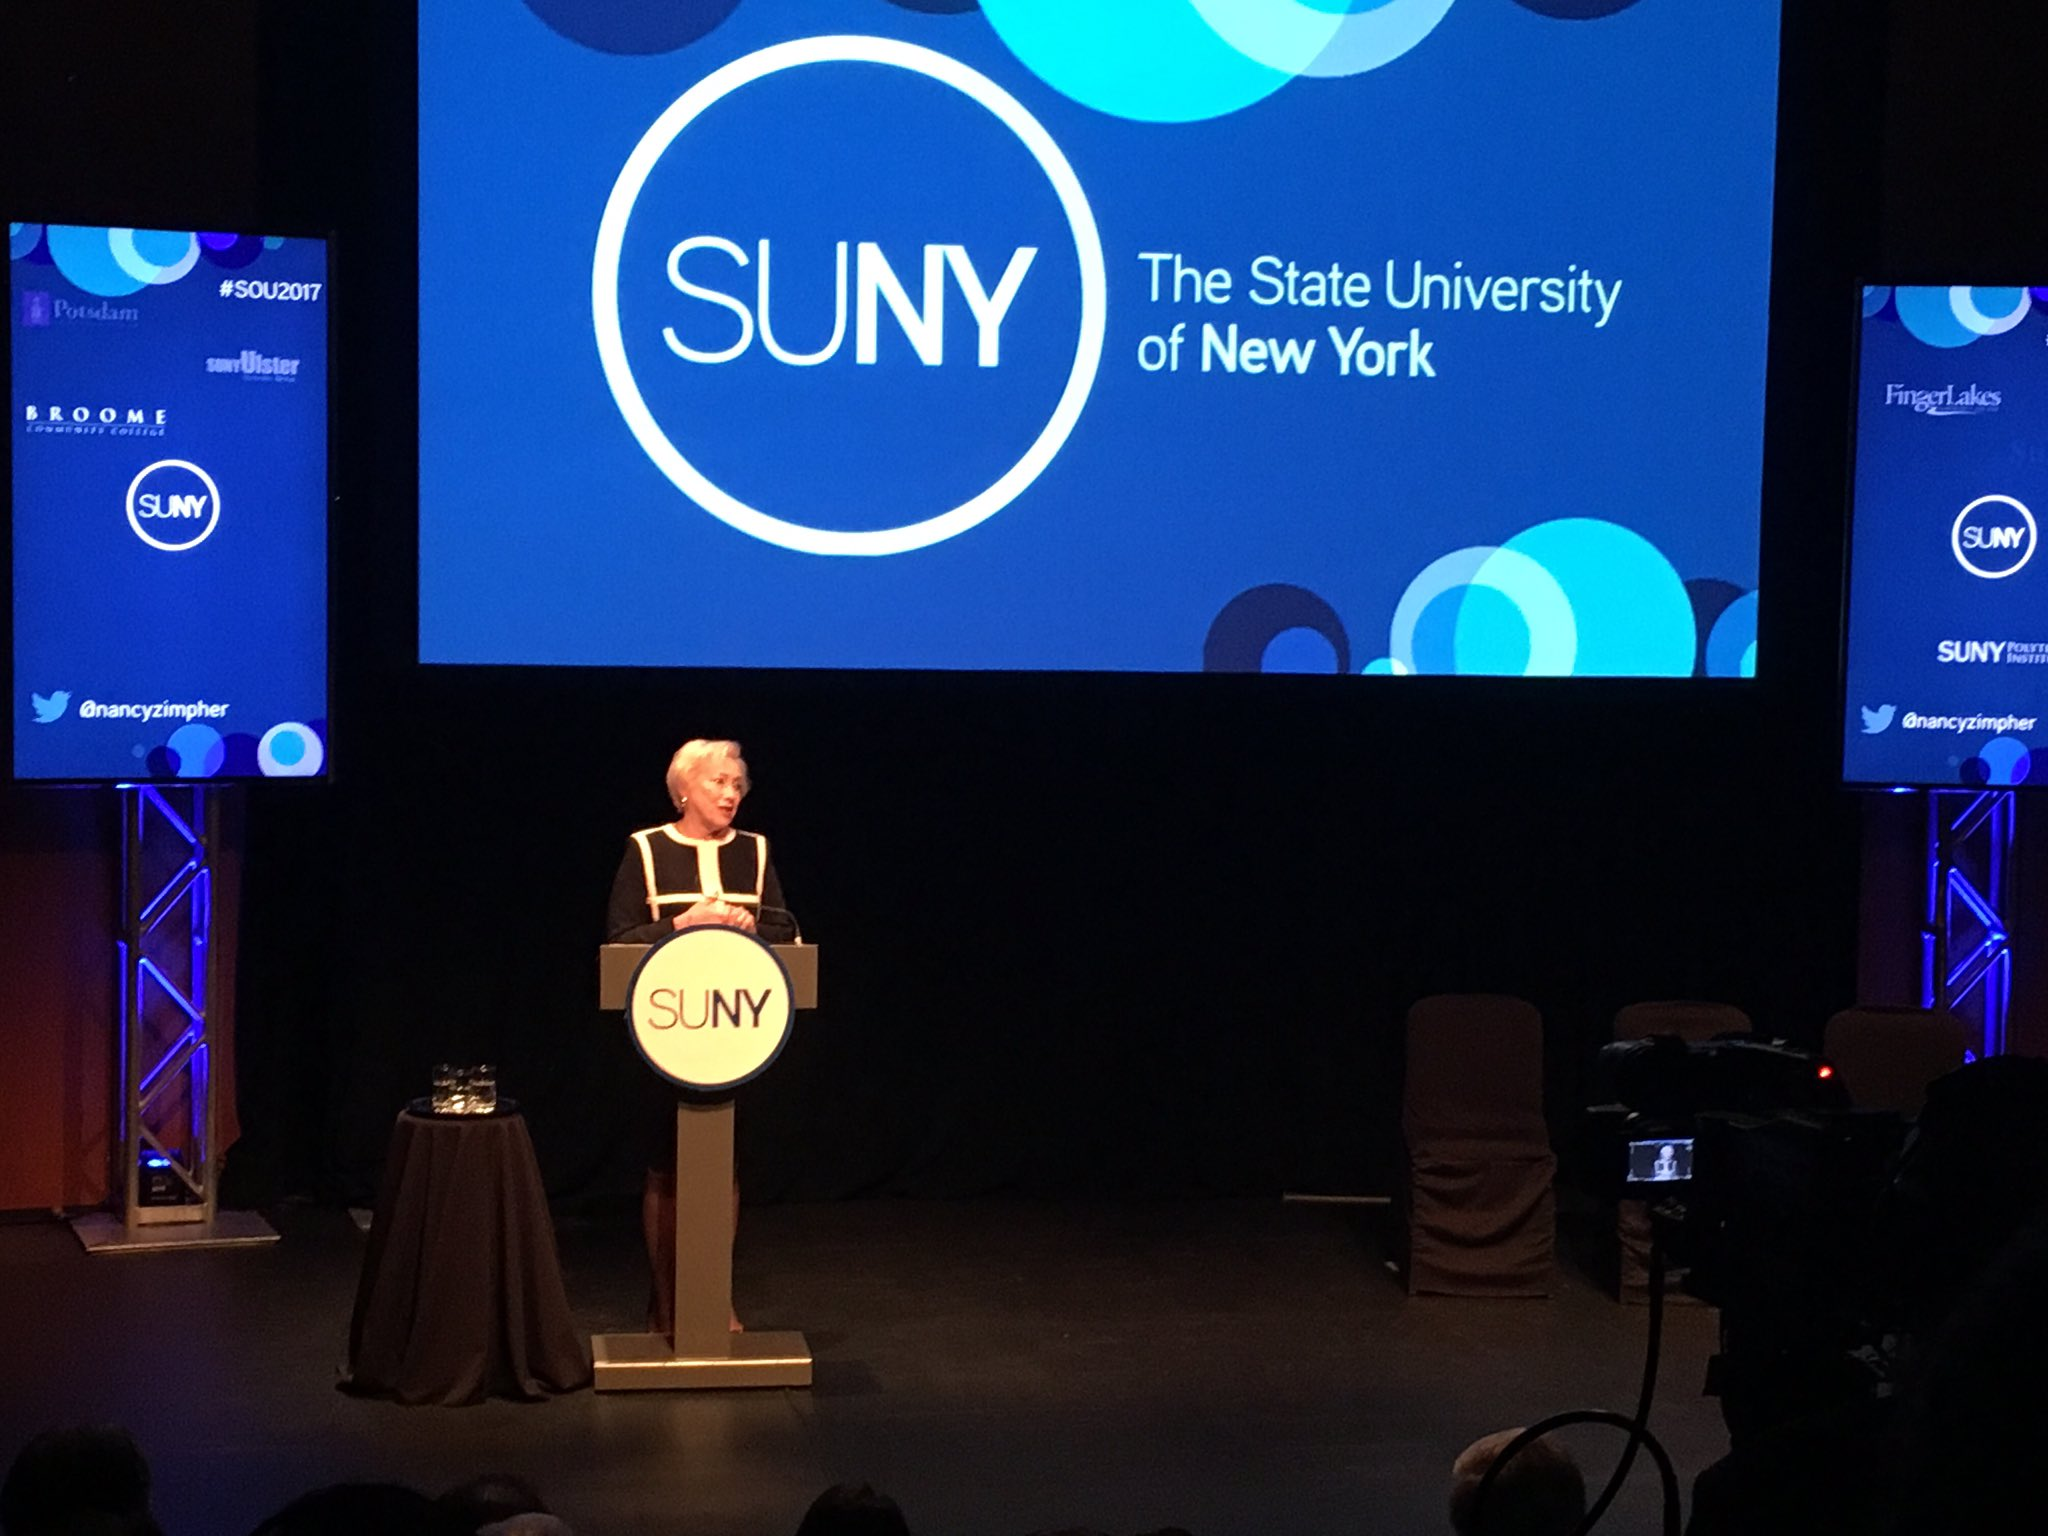 Nancy Zimpher is on stage now for her final State of the University address #SOU2017 https://t.co/fh3r70DscJ